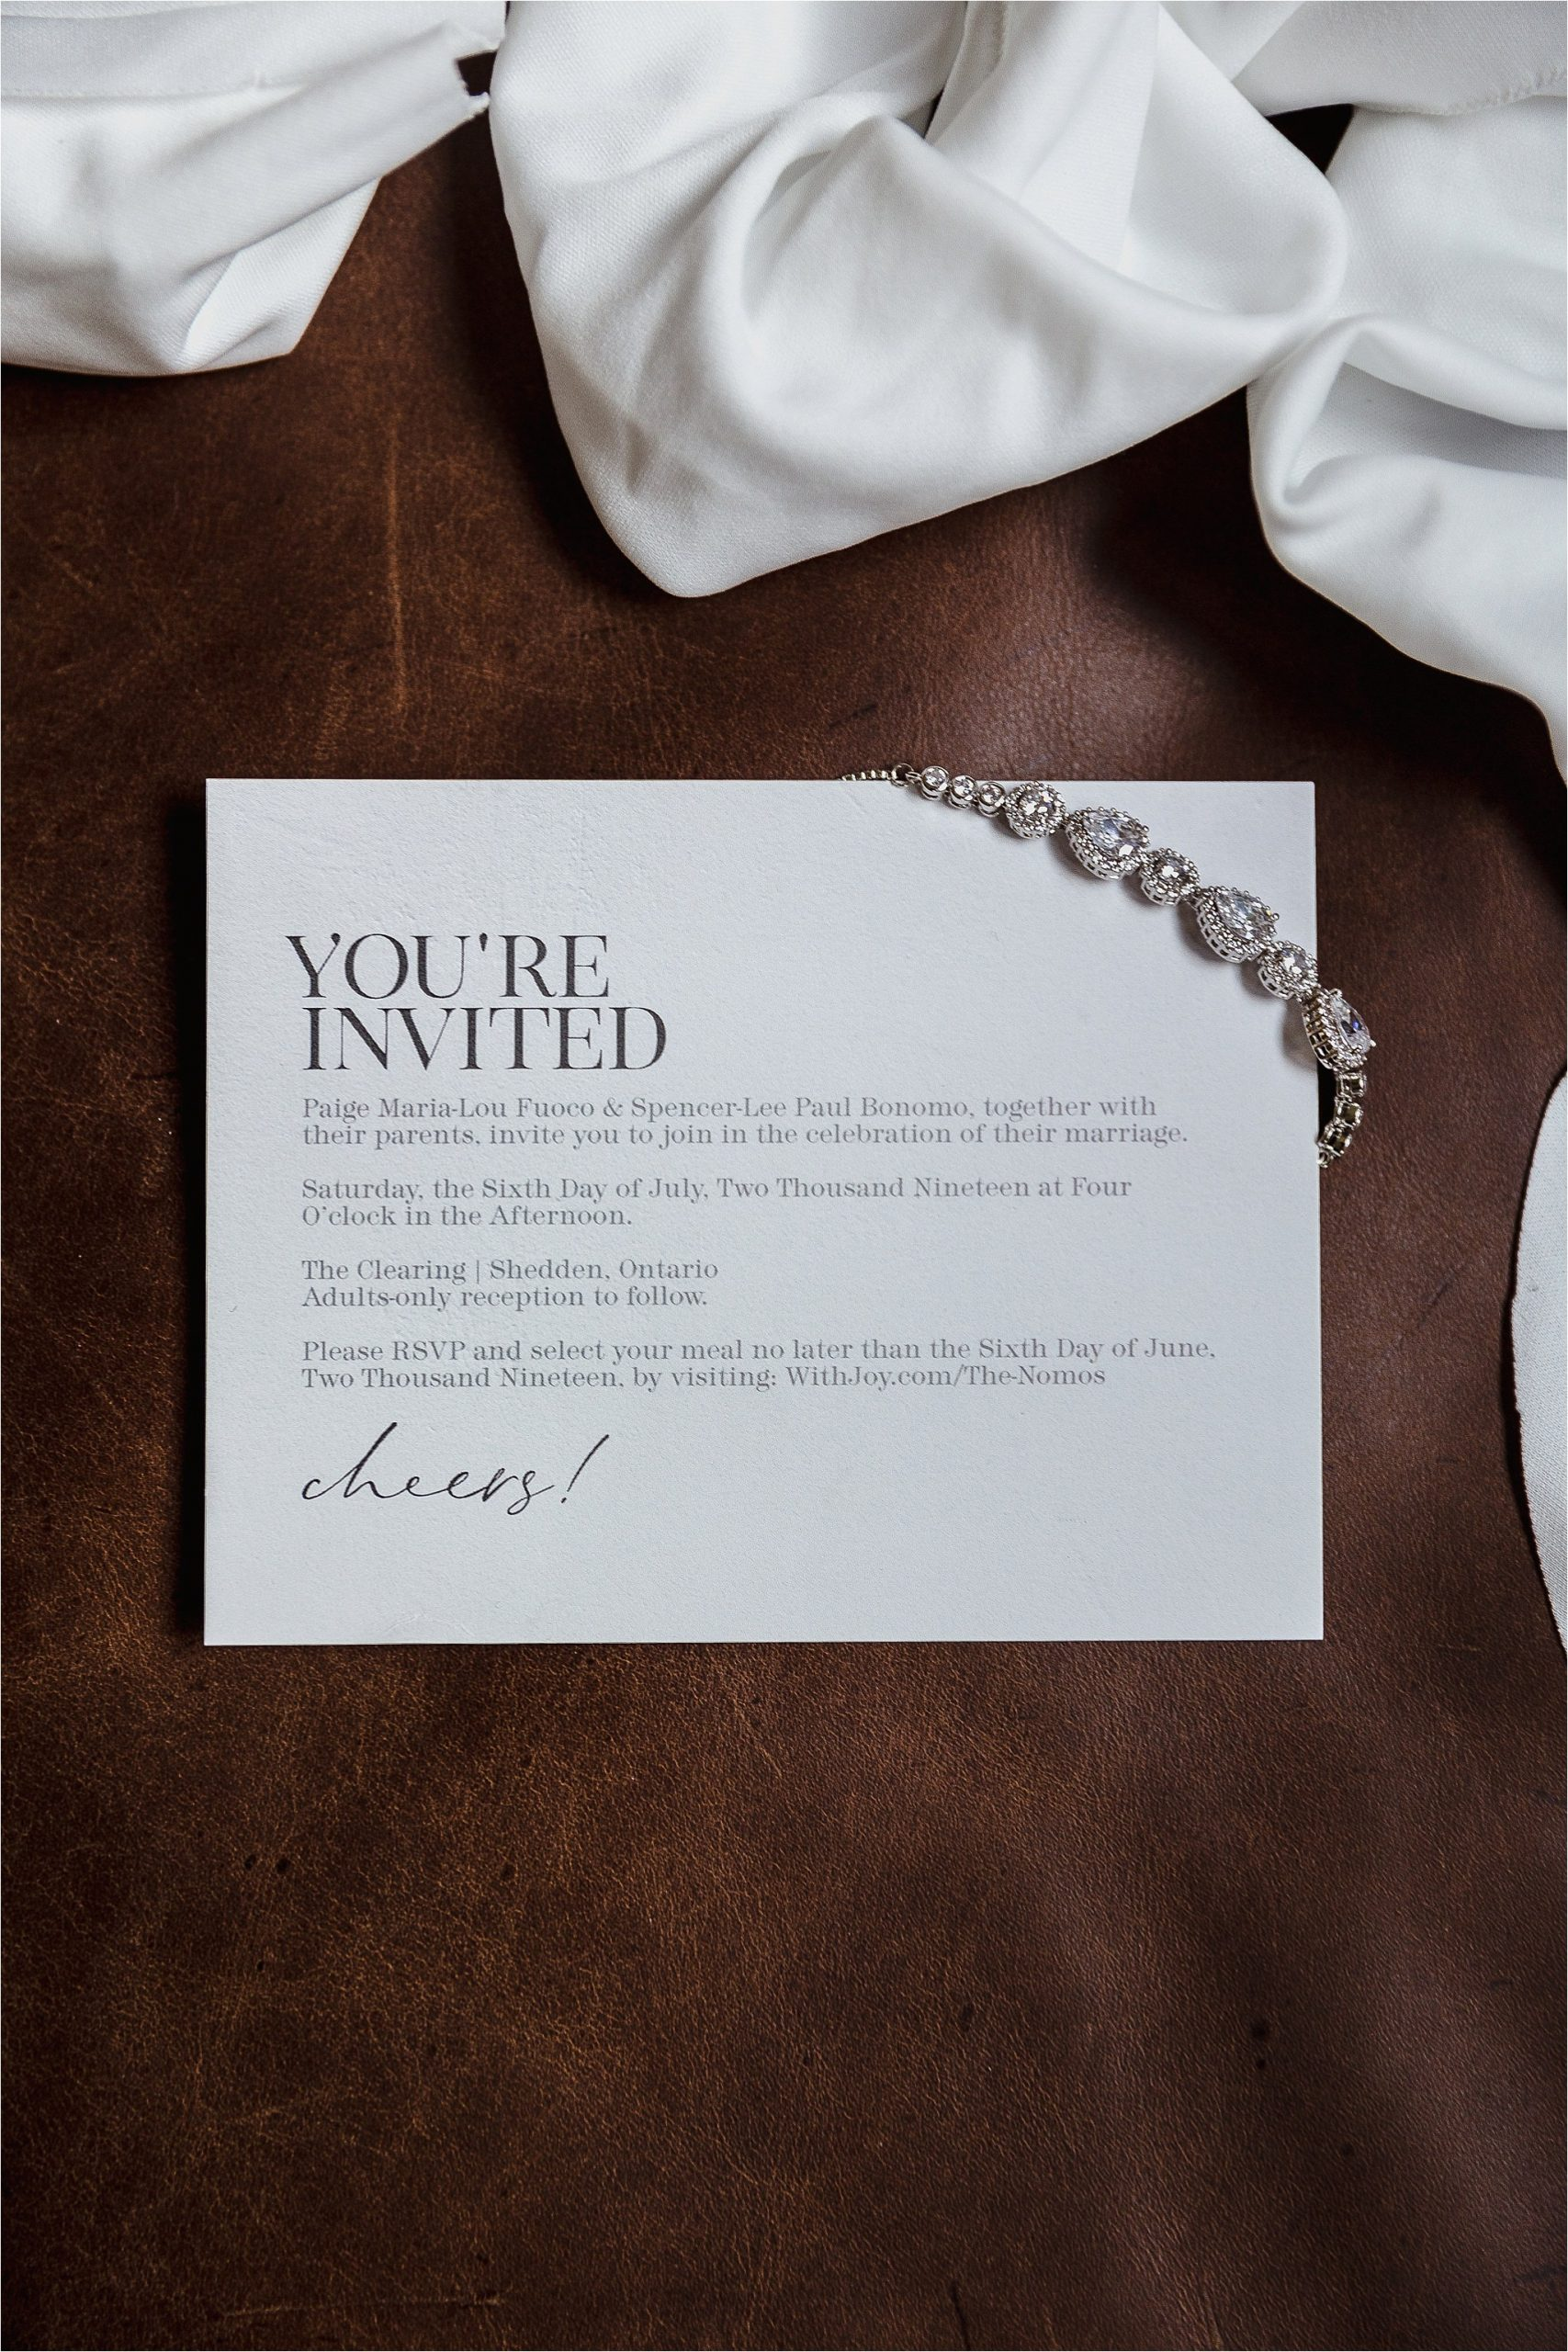 Wedding invitation and bride's bracelet on leather couch